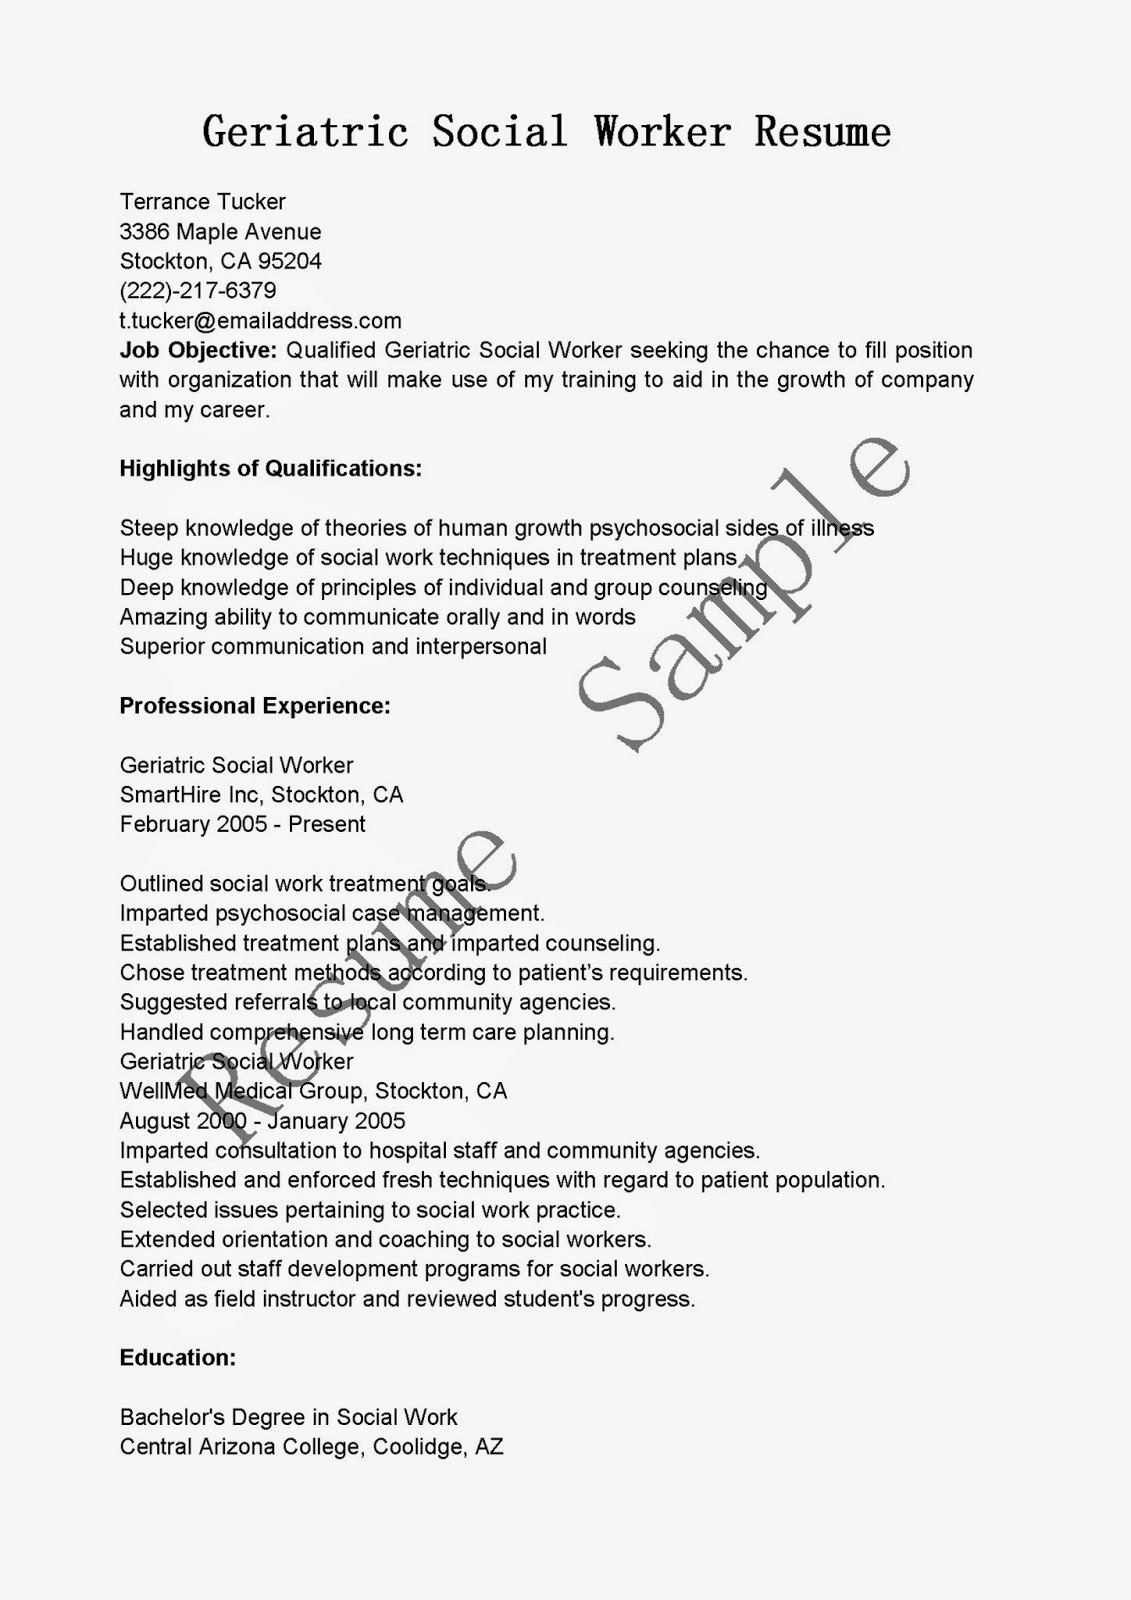 general warehouse worker resume tk general warehouse worker resume 25 04 2017